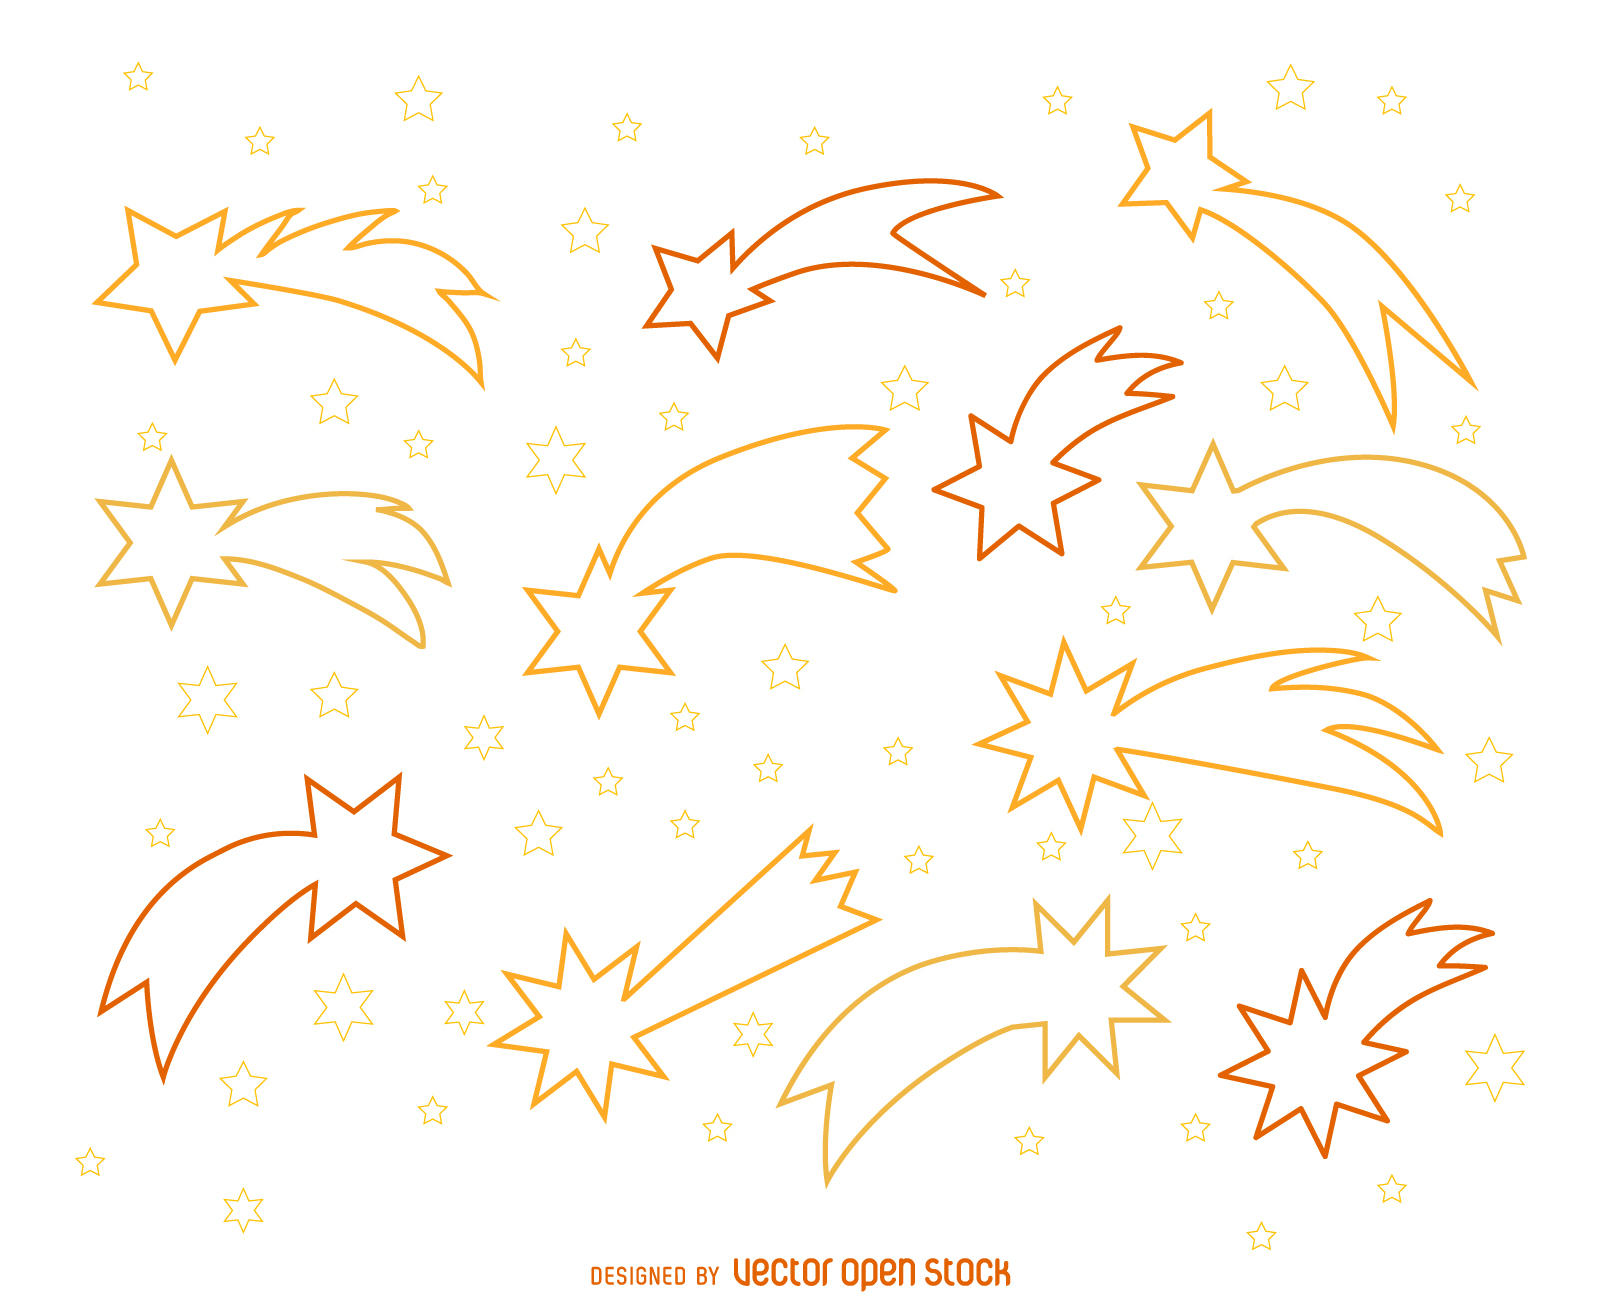 Shooting Stars Outline Illustrations Motif 1601x1312 Wallpaper Teahub Io